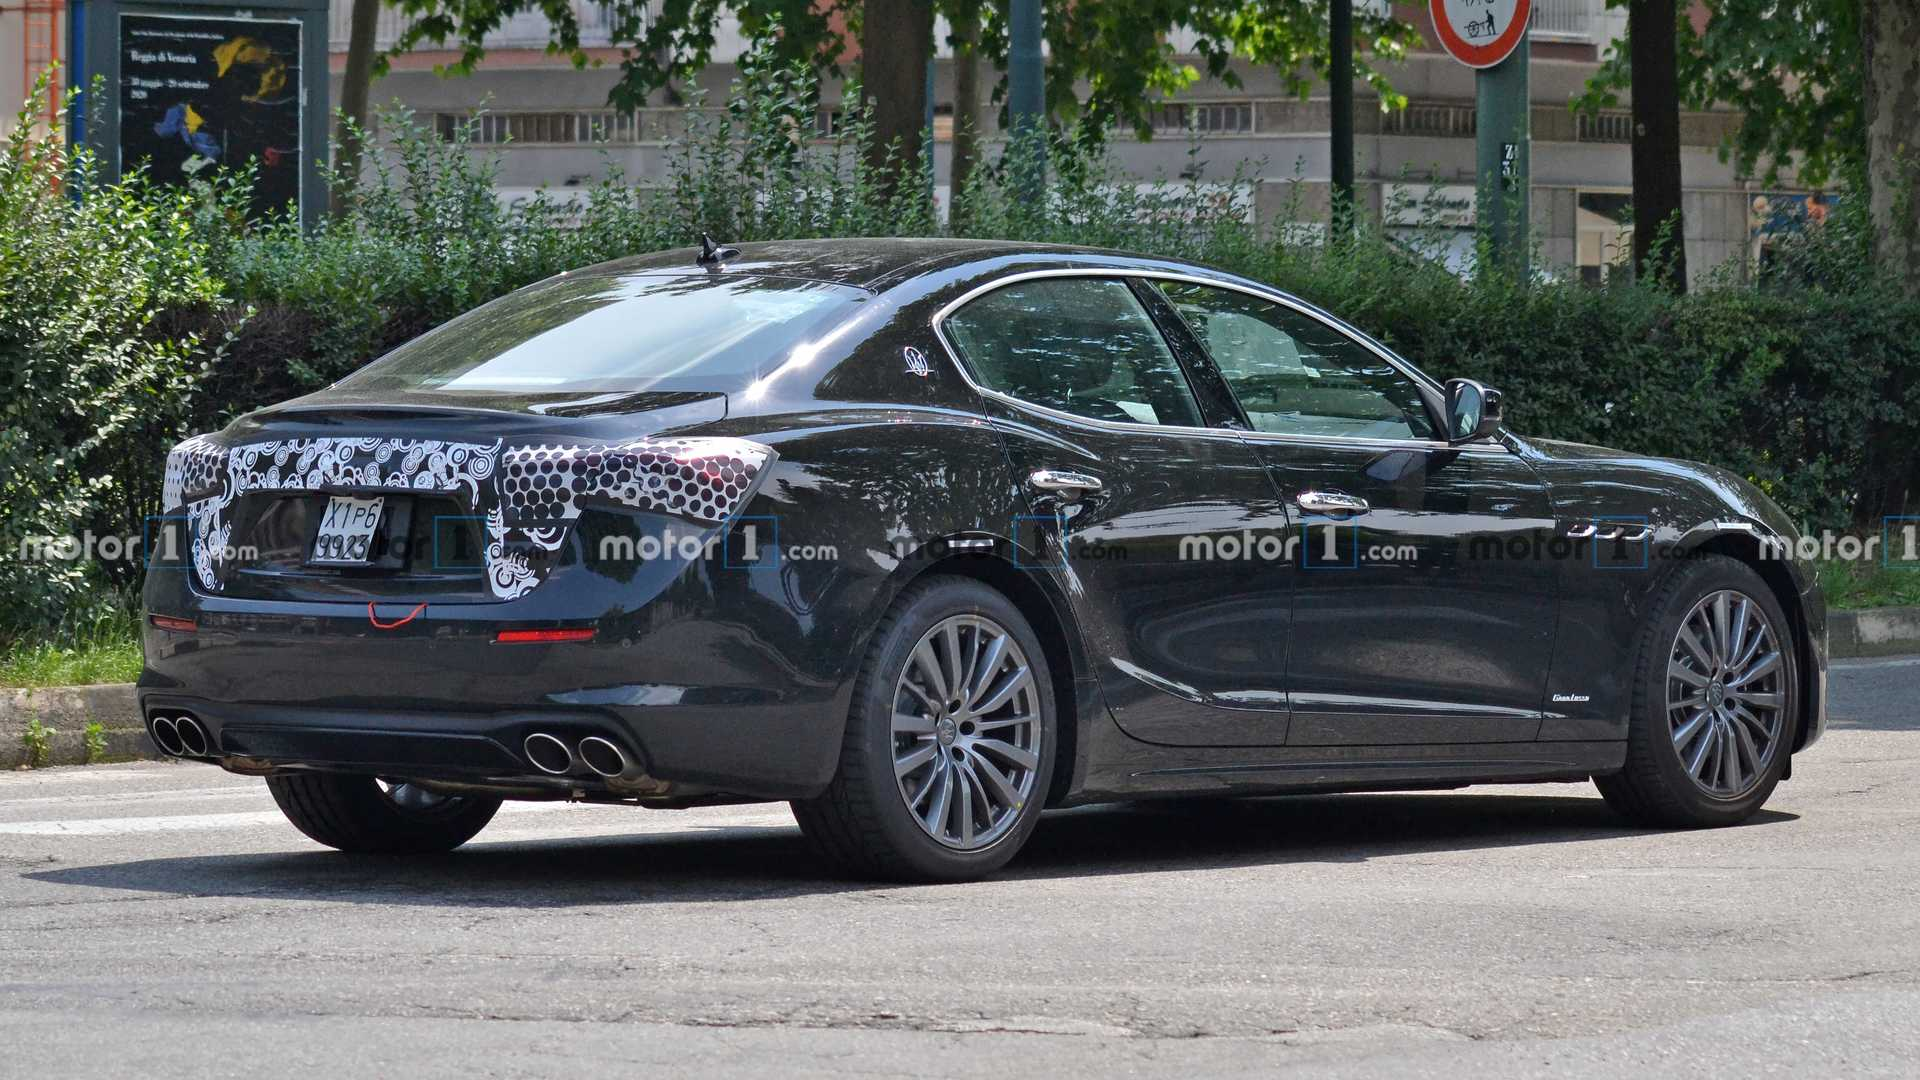 2014 - [Maserati] Ghibli - Page 10 2021-maserati-ghibli-facelift-spy-photo